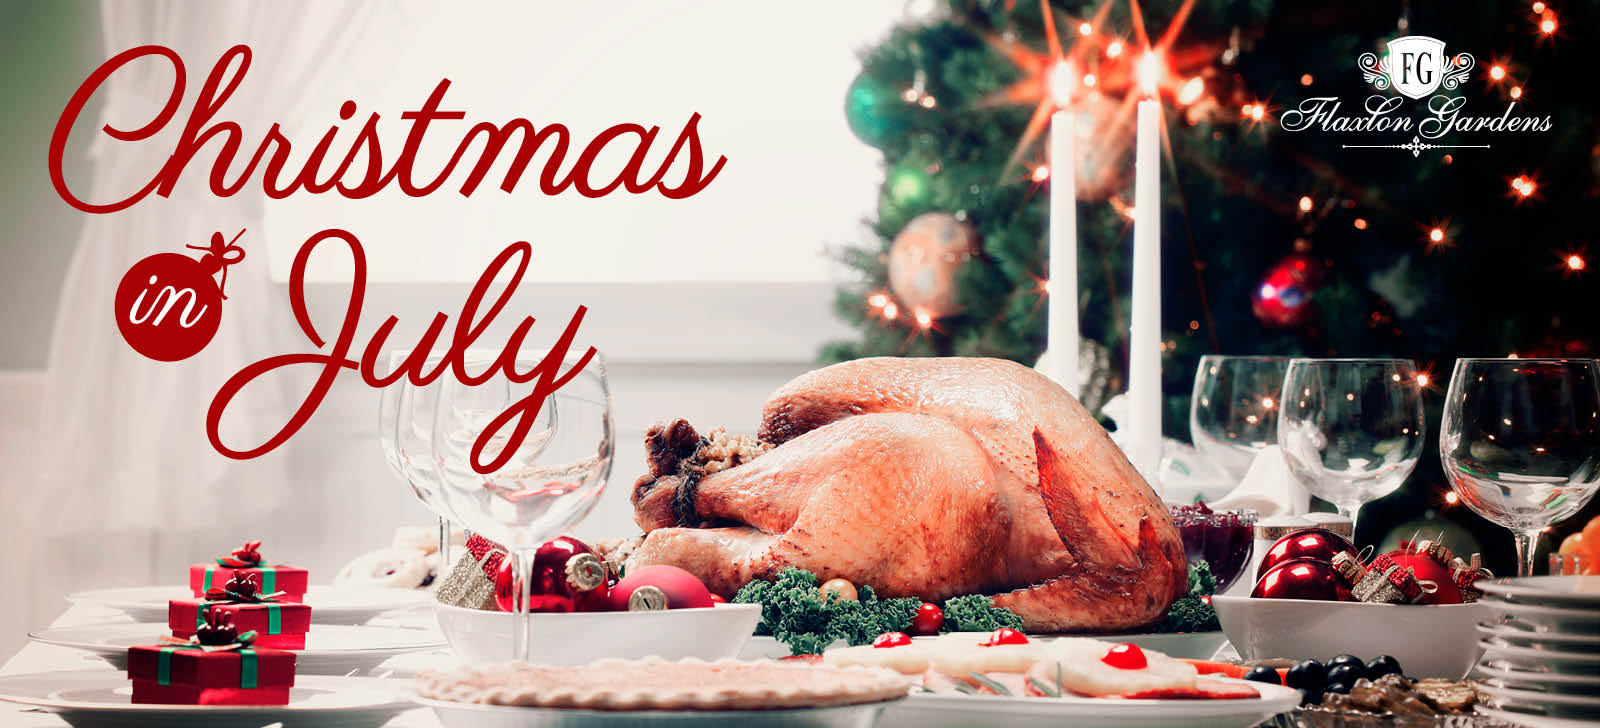 Merry Christmas In July Clipart.82 Best Merry Christmas In July Greeting Pictures And Photos